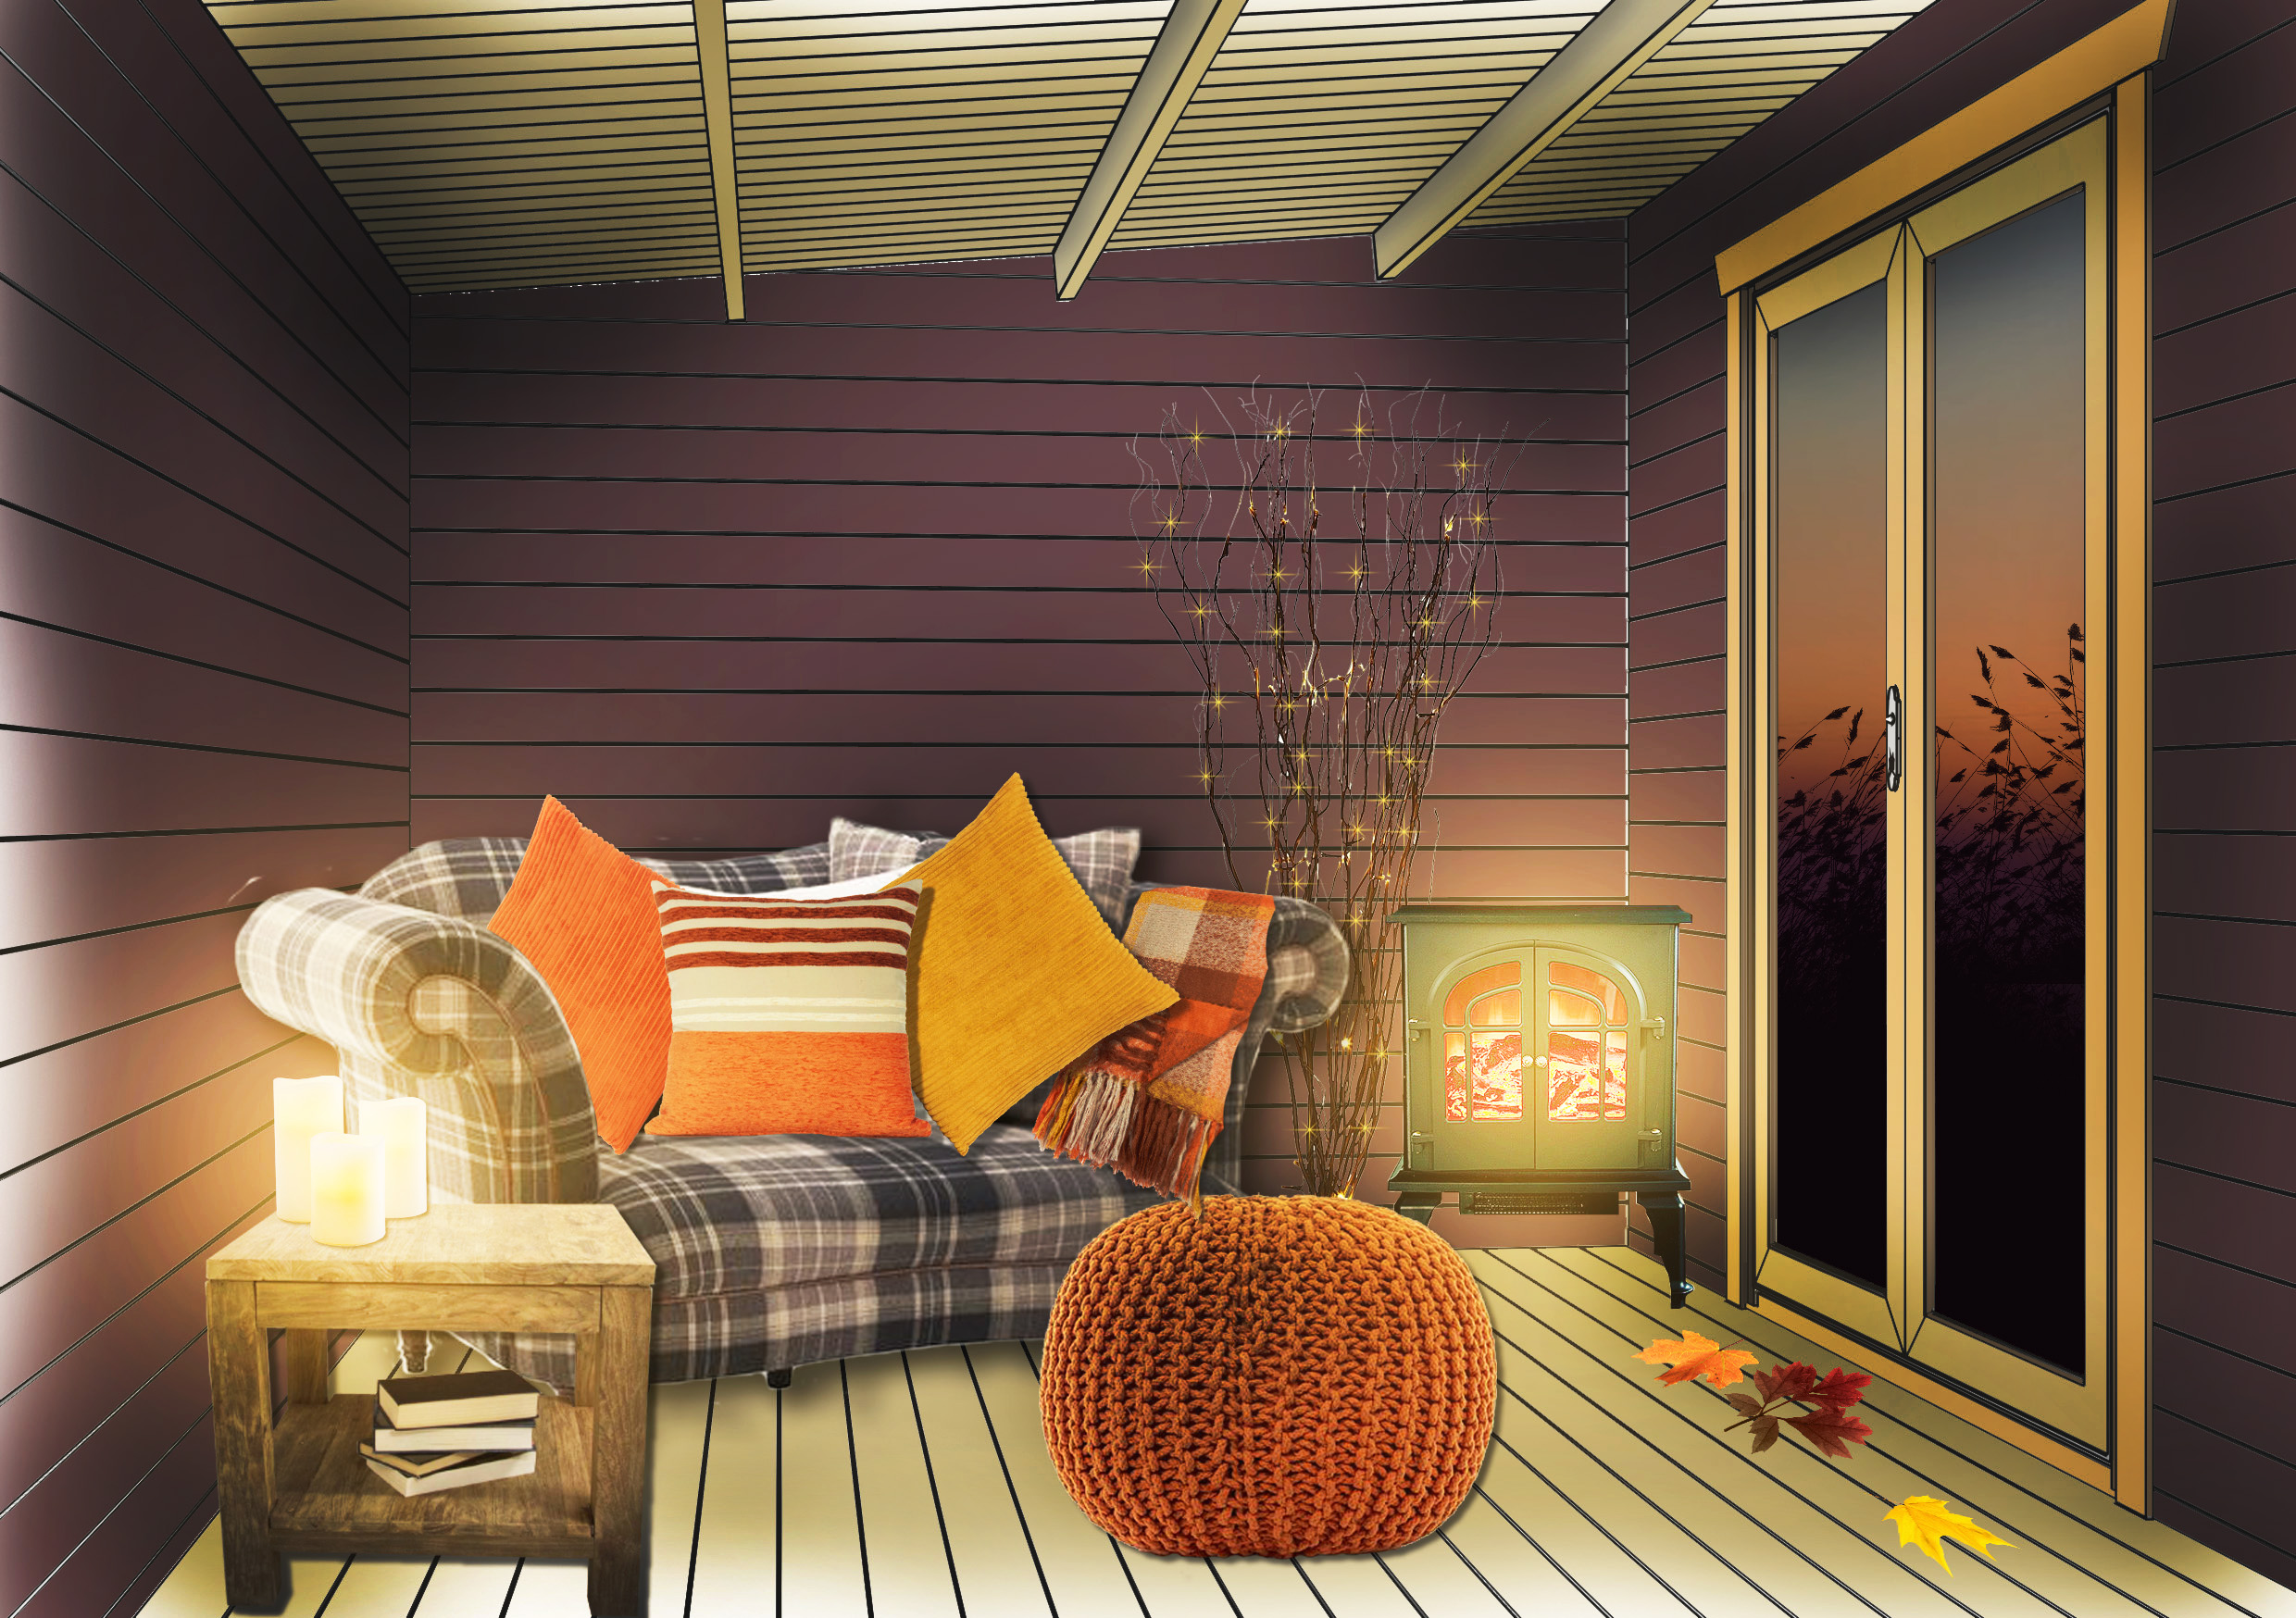 Autumn Interior - Cabin decorated with an autumnal interior.